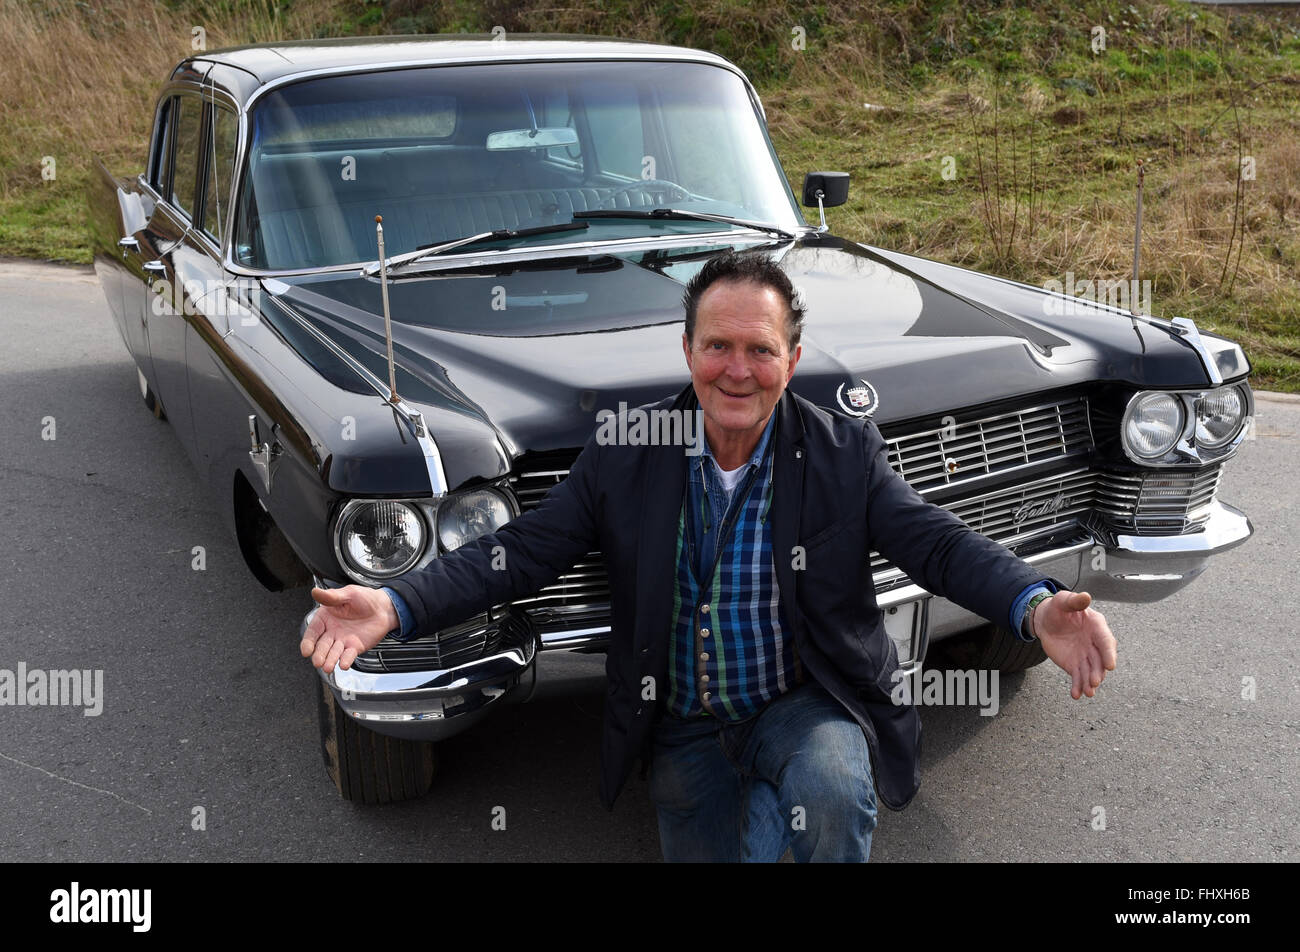 mettmann germany 26th feb 2016 vintage car trader michael stock photo royalty free image. Black Bedroom Furniture Sets. Home Design Ideas